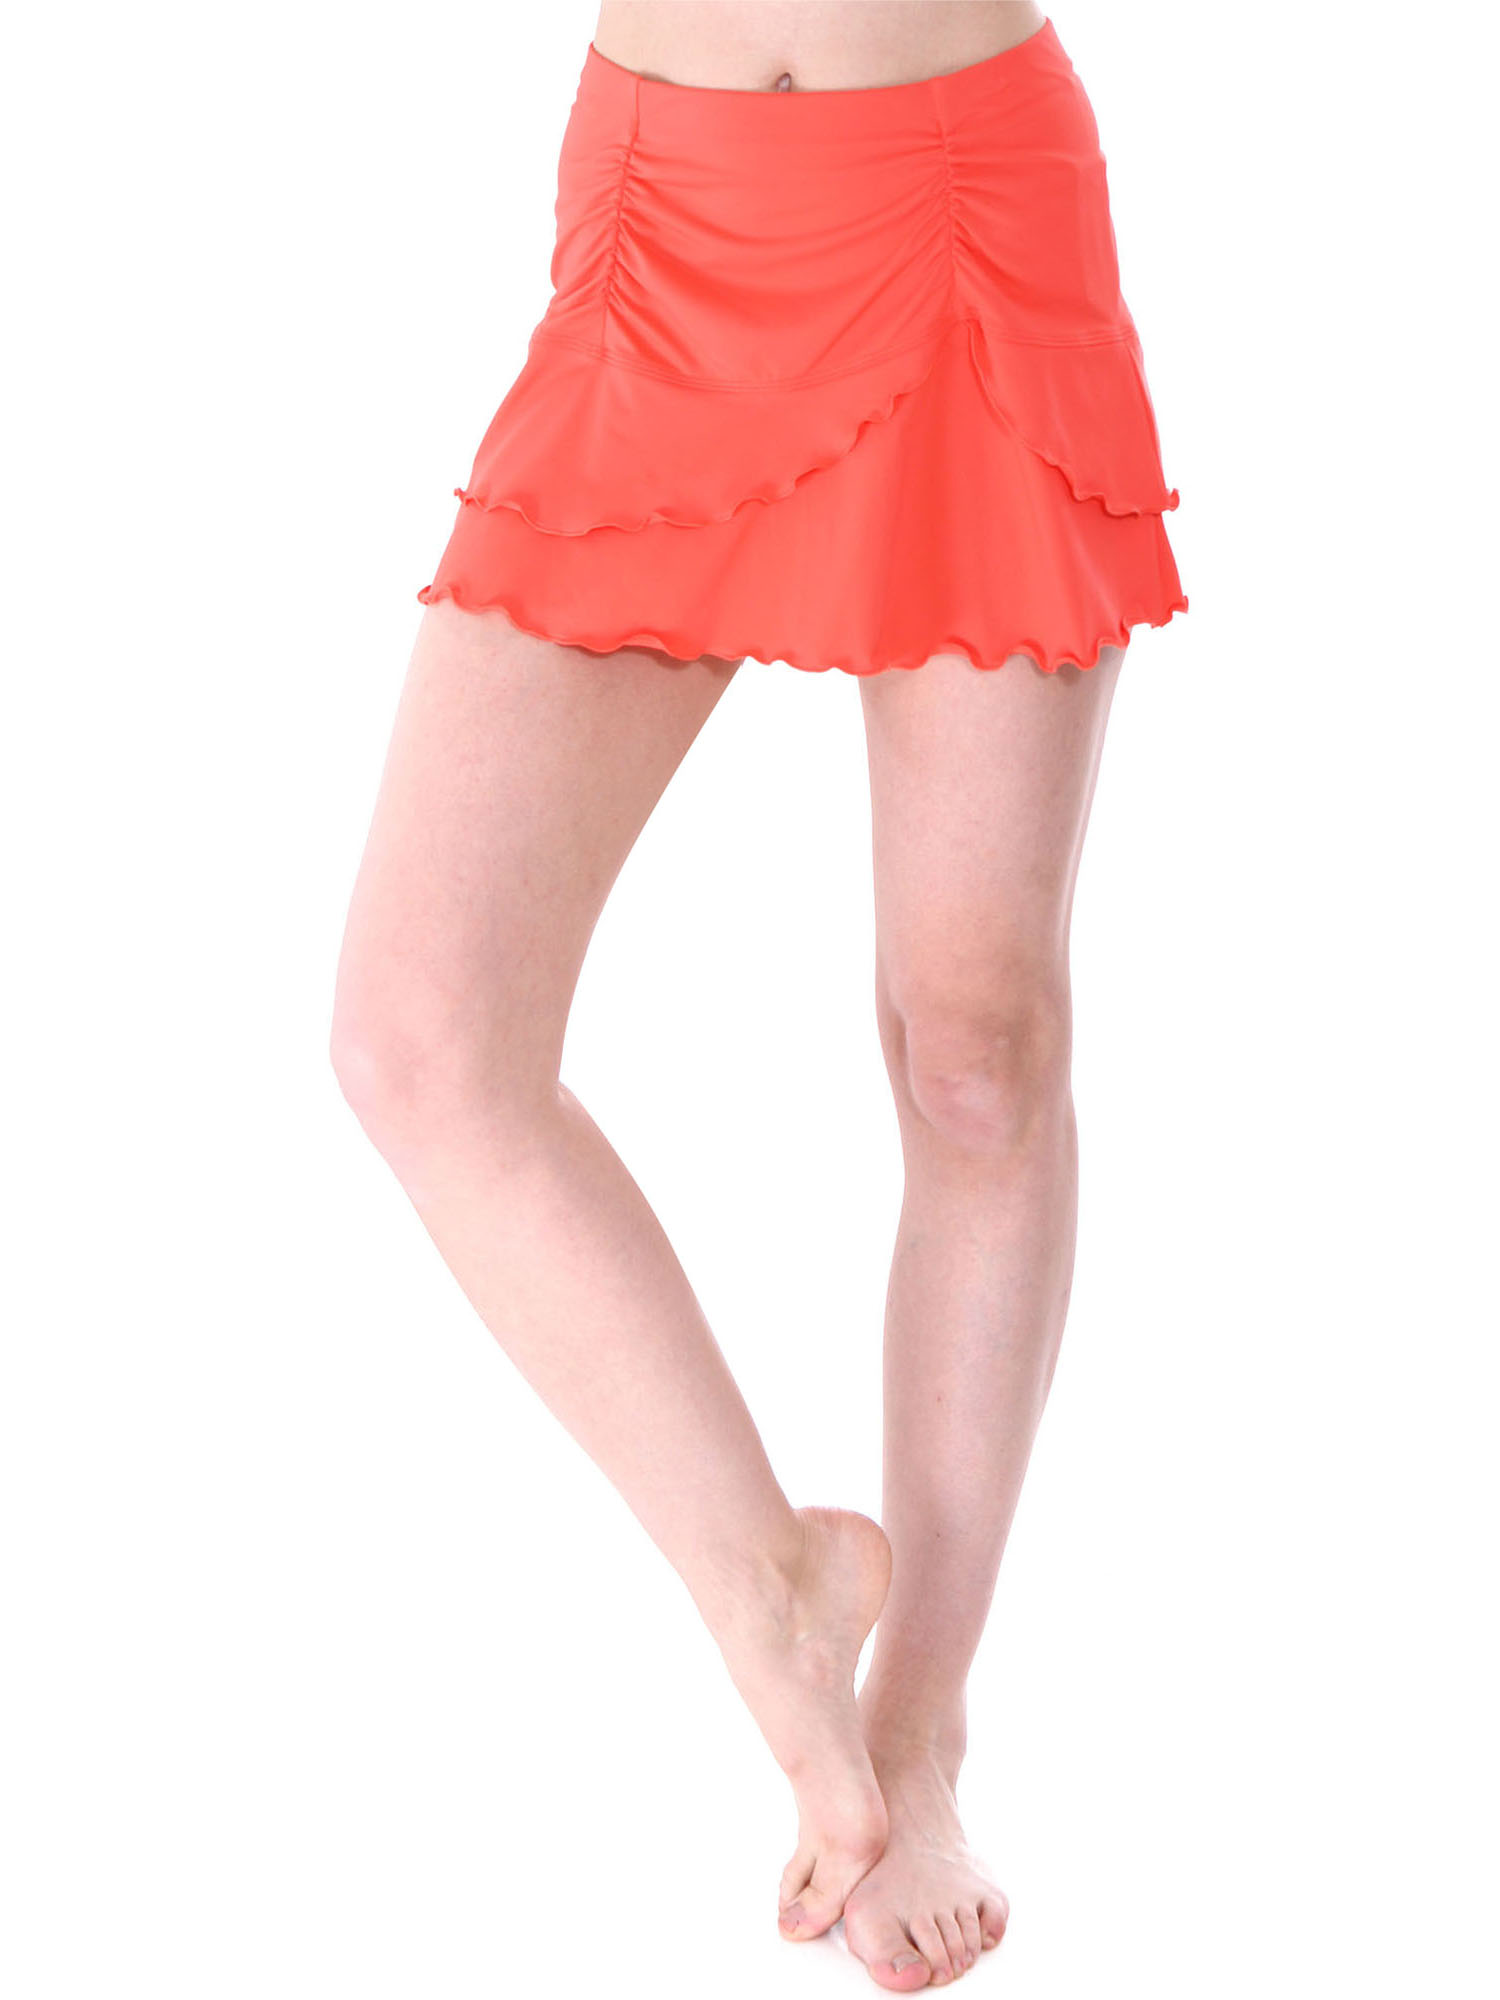 Women's Summer Solid Colored Cover Up Skirt Swim Skirt, Coral, M